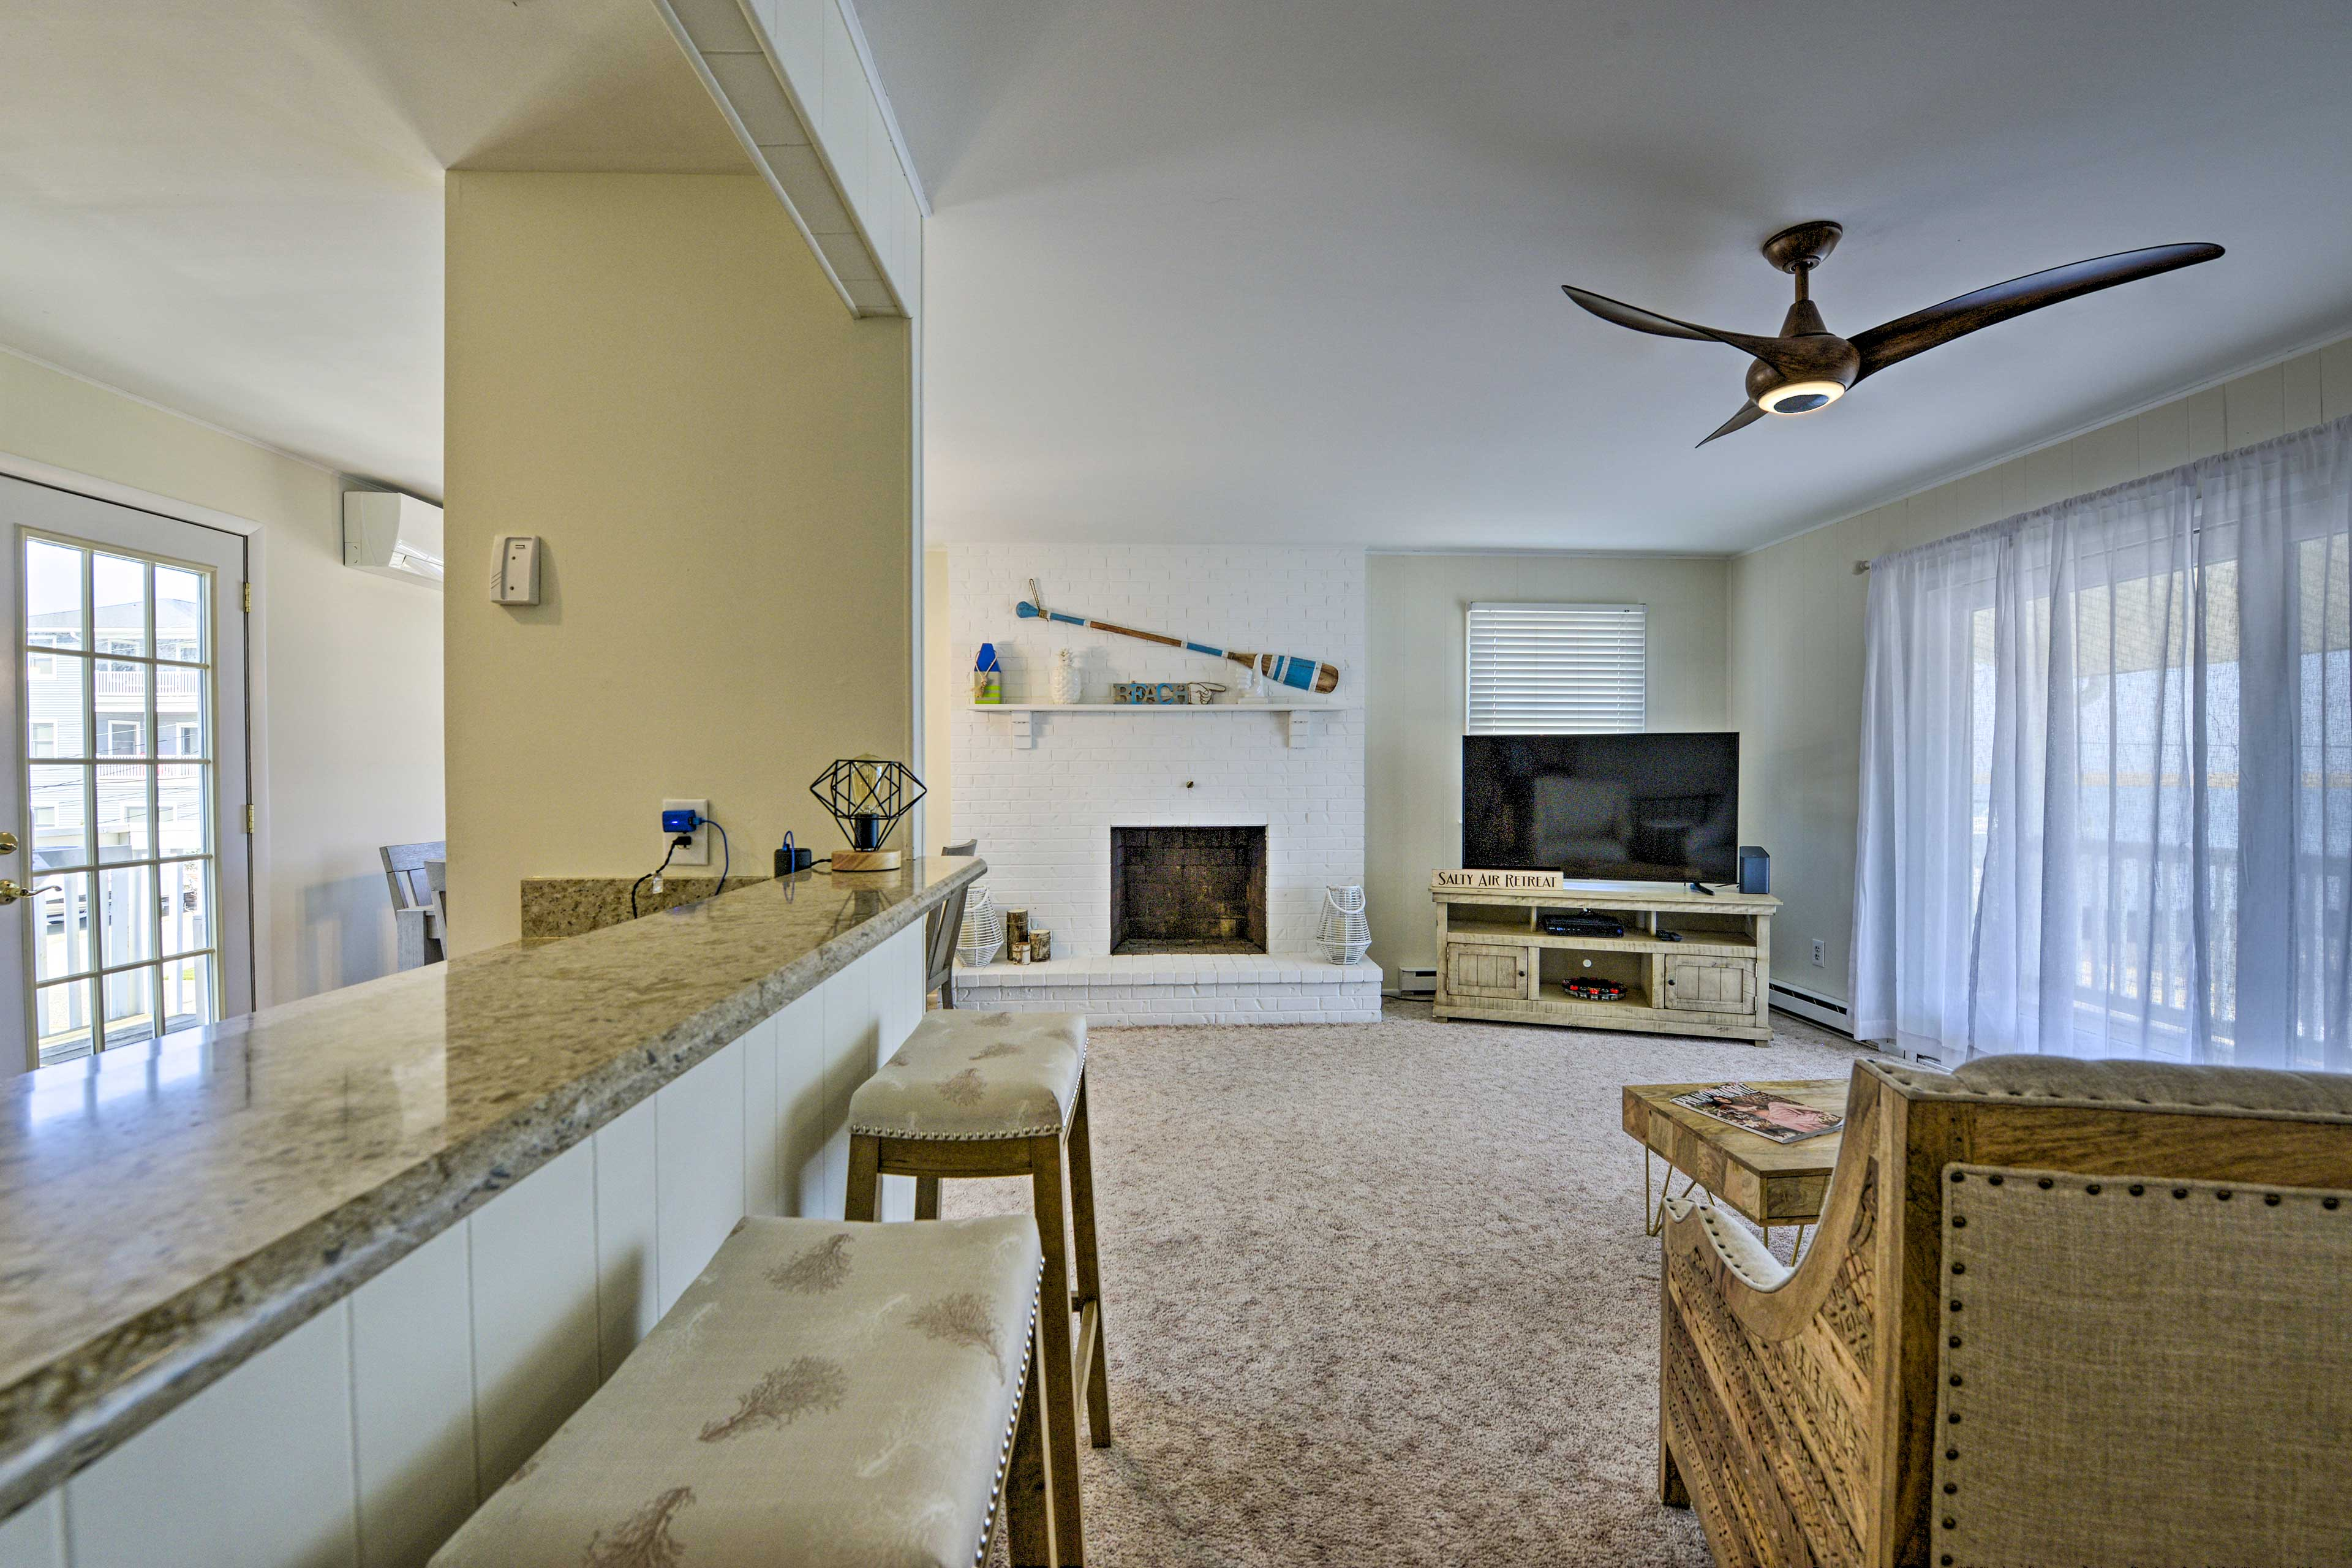 Ceiling fans and the A/C will keep you cool all vacation long.